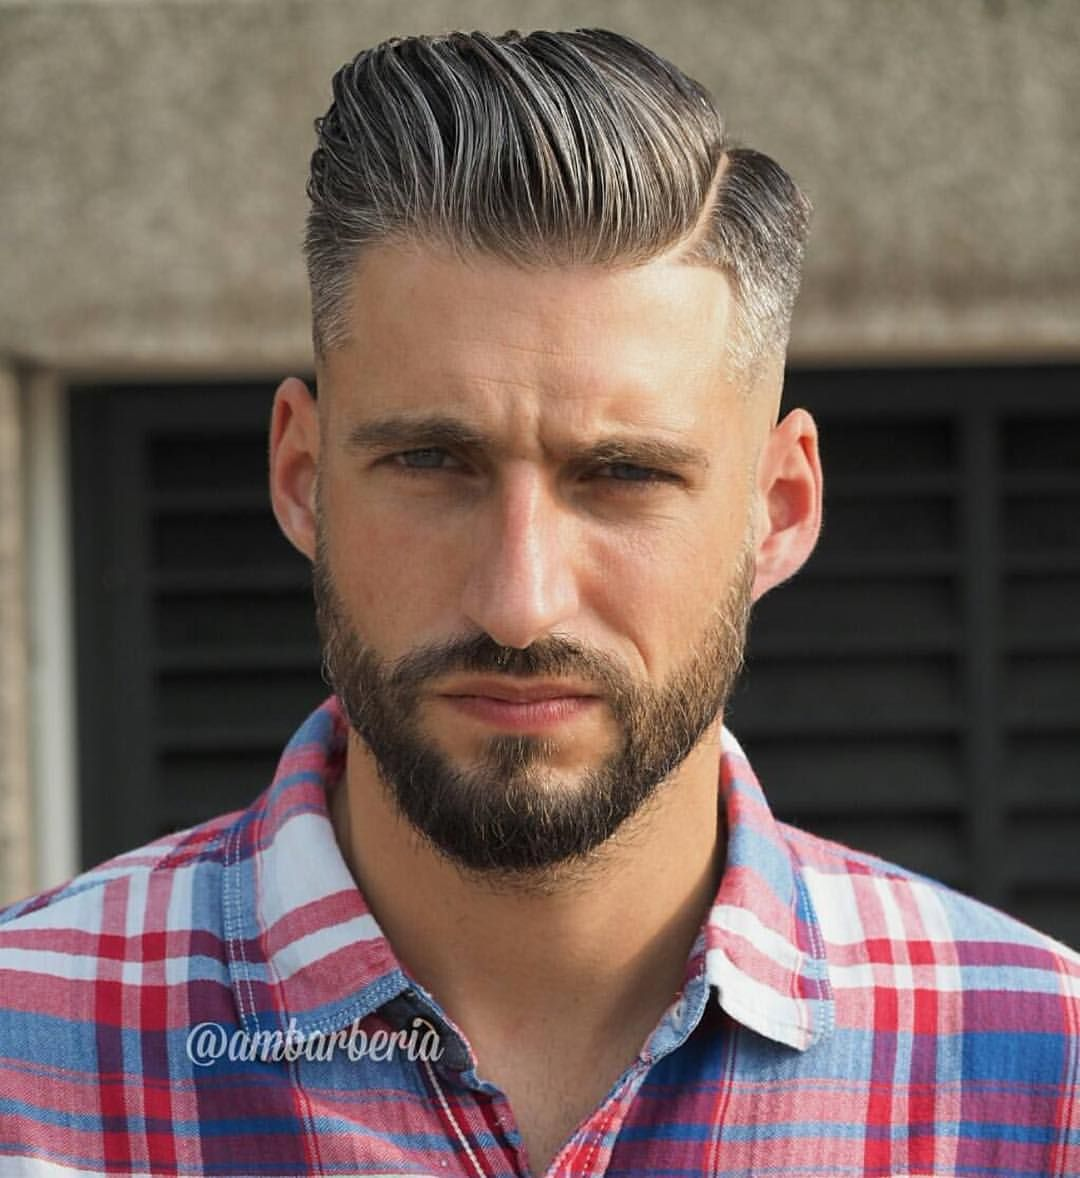 Mens haircuts with beards see this instagram photo by hairmenstyle u  likes